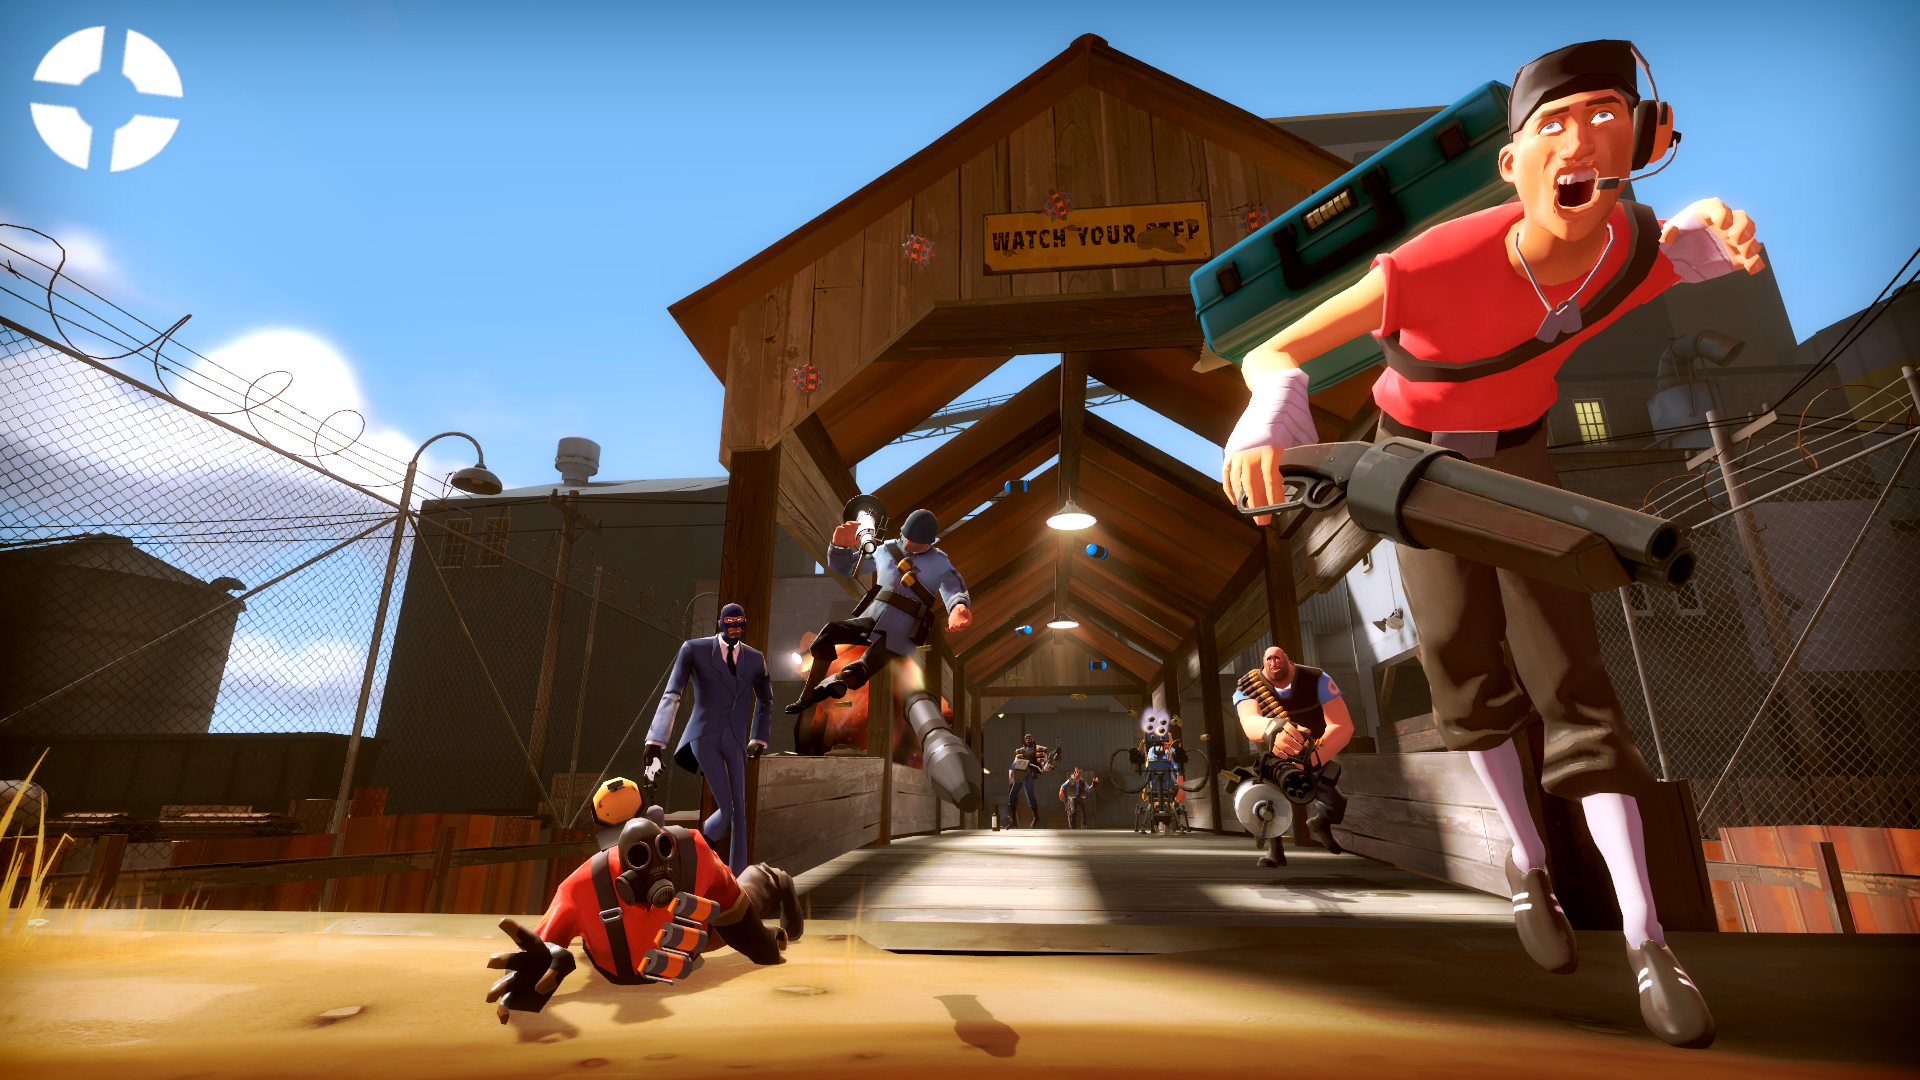 First Ever TF2 Wallpaper Ive Made Using Garrys Mod Opinions